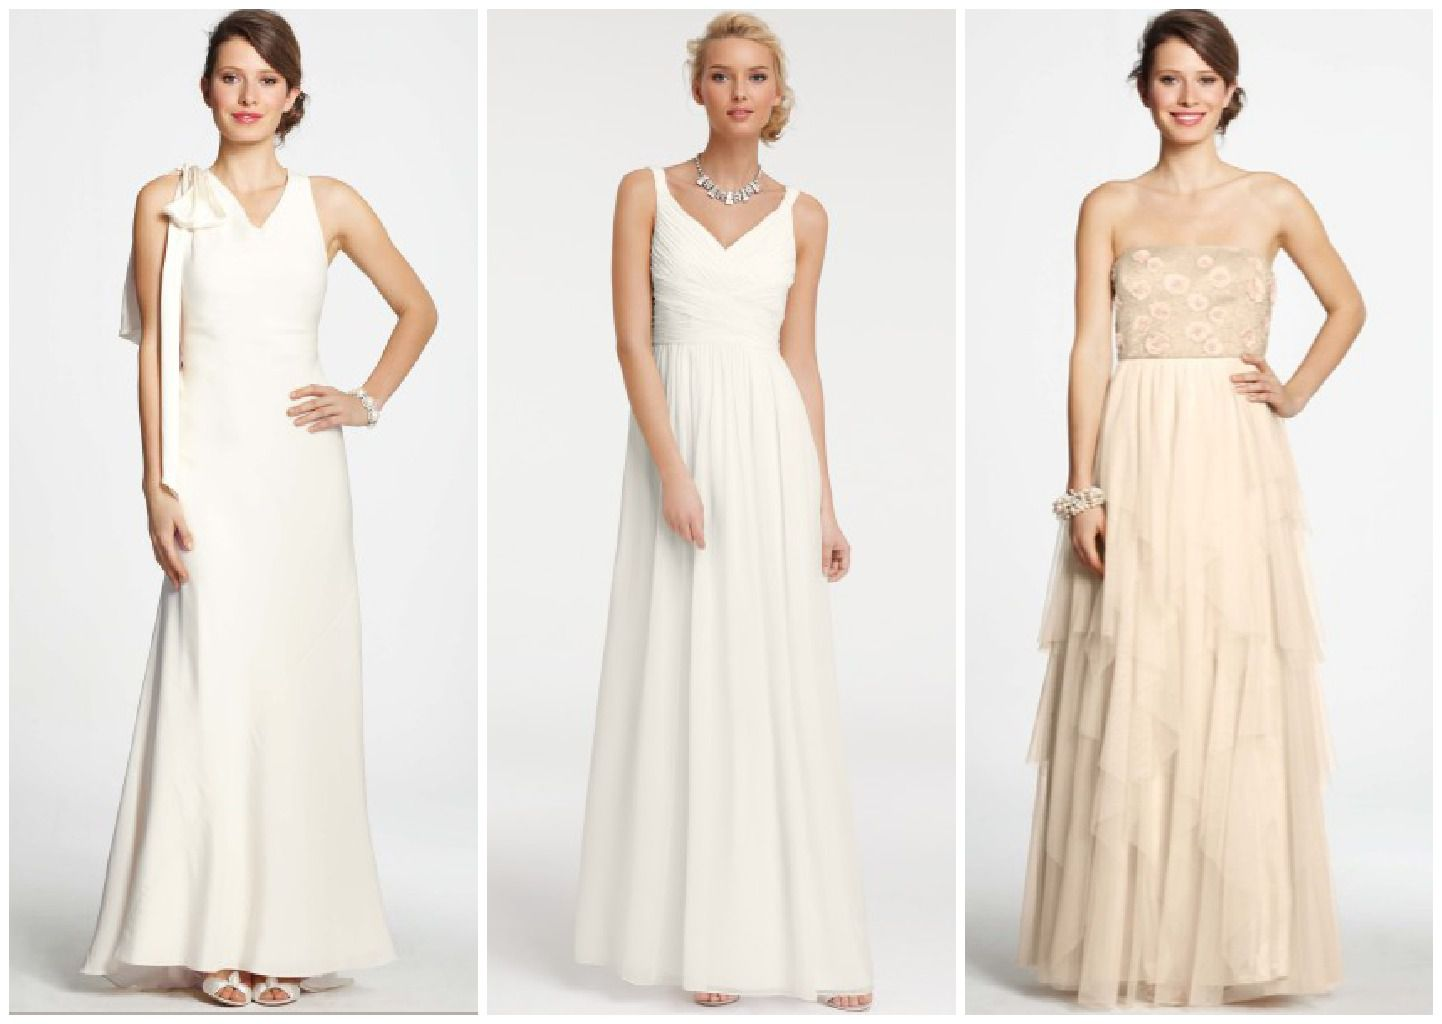 Ann taylor wedding dresses rustic wedding chic wedding gown dresses from ann taylor junglespirit Images